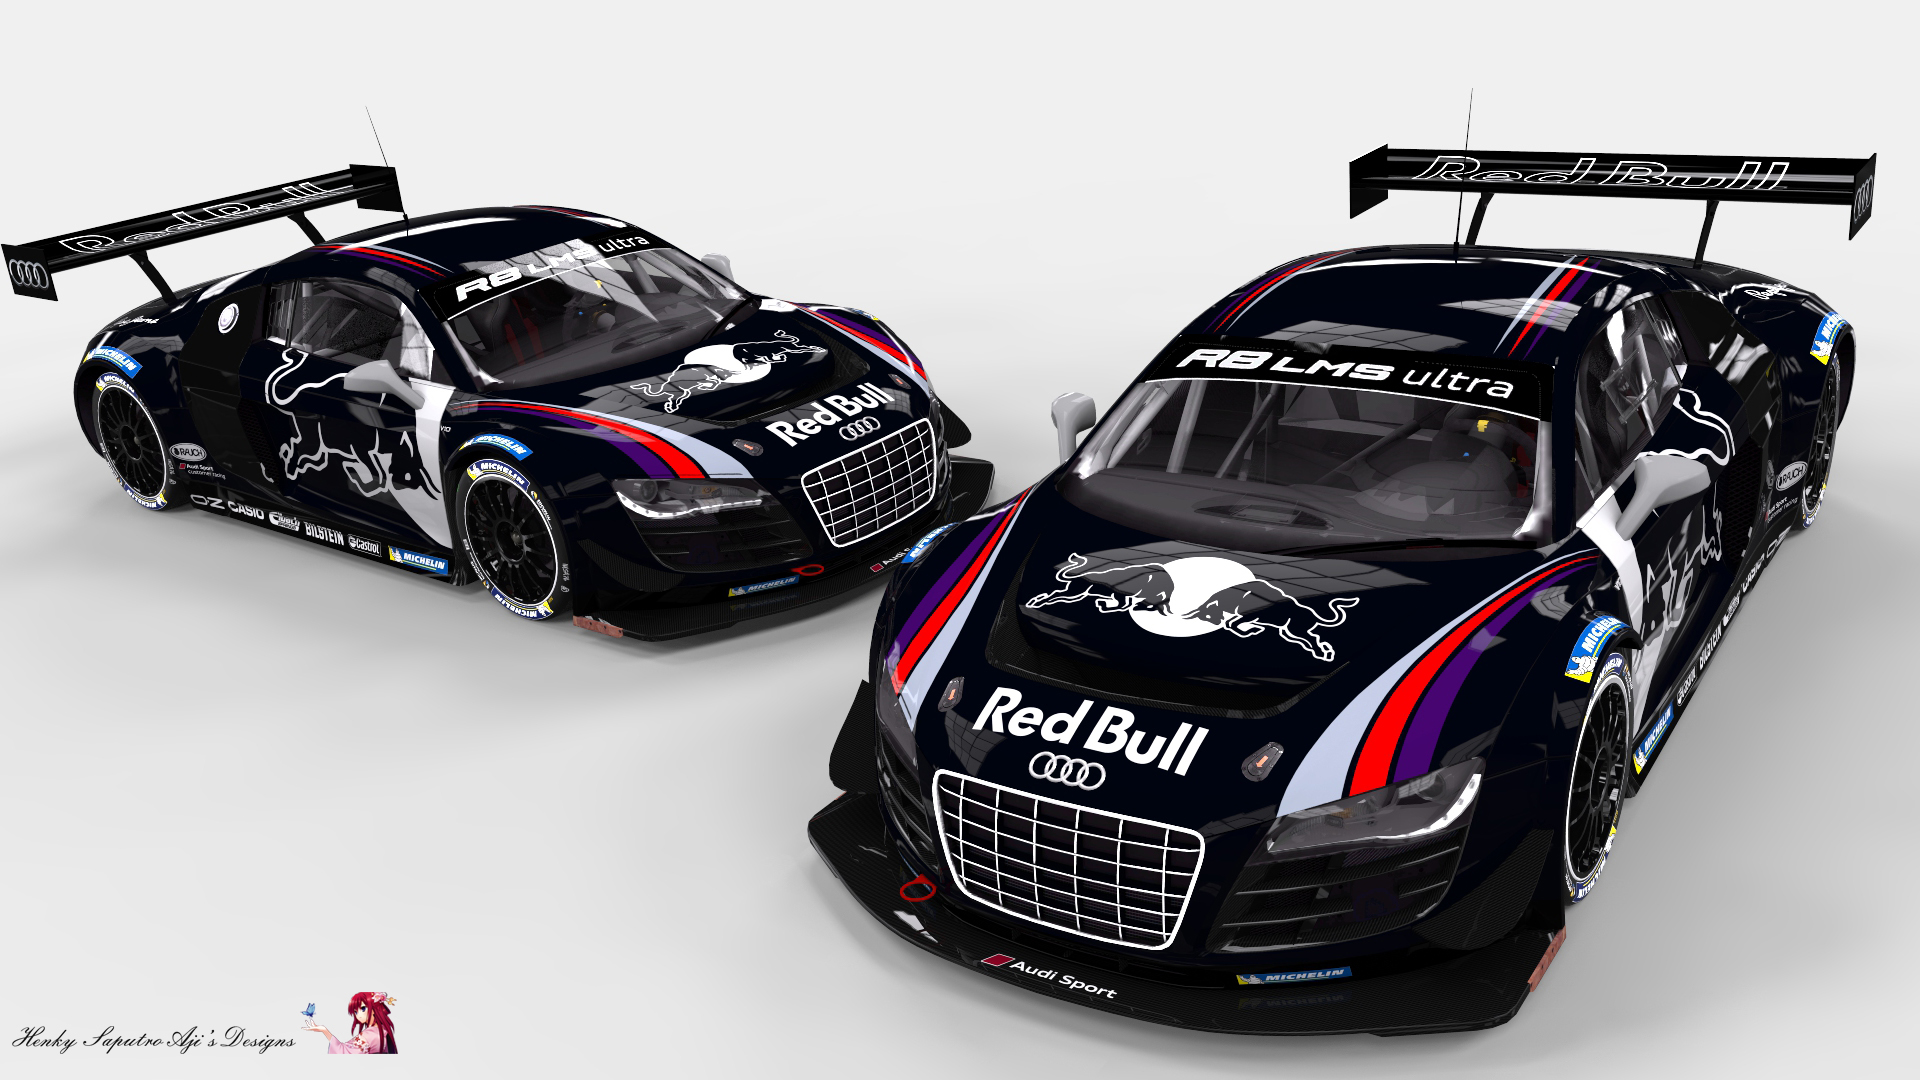 Just Simply Drop The Skin To Audi R8 LMS Skin Folder. Any Issues  Encountered Feel Free To Post In Discussion Tab.